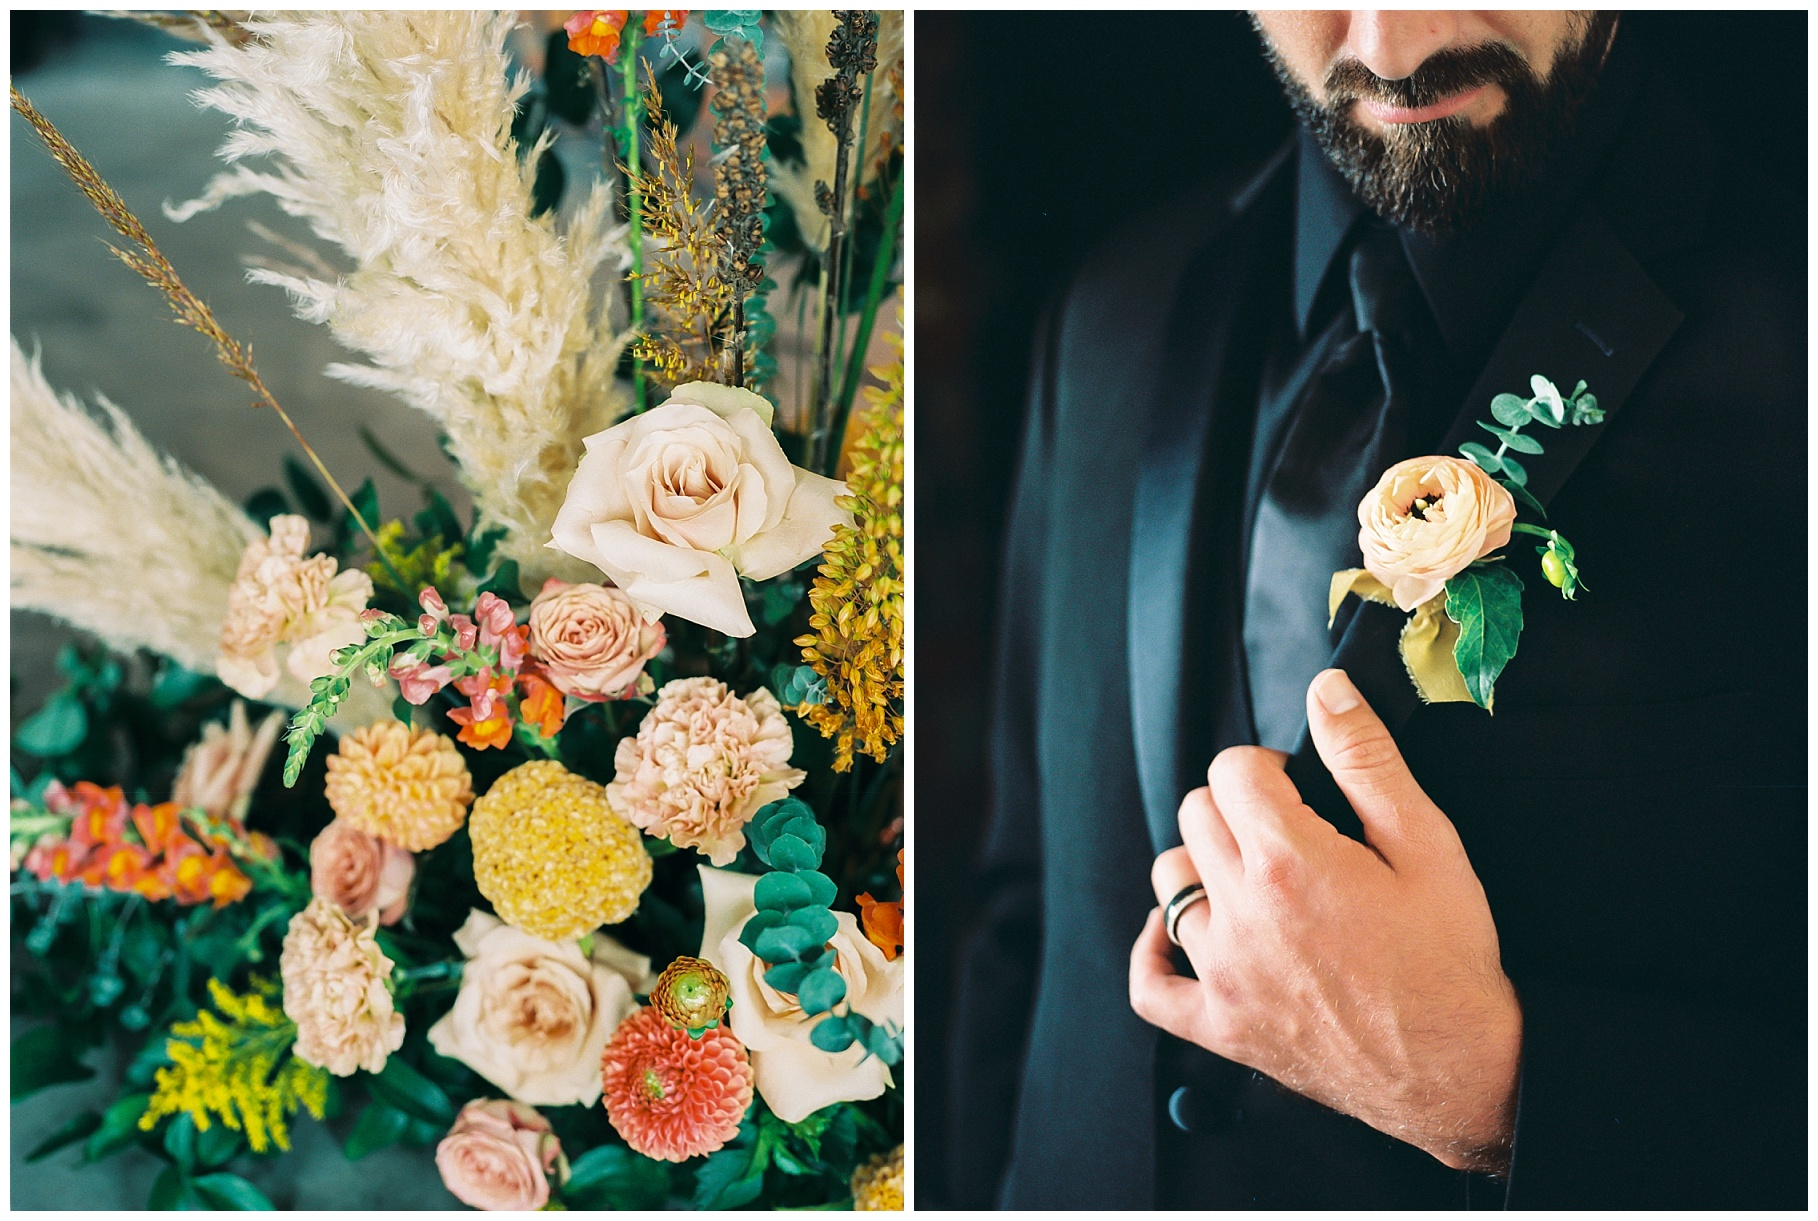 Urban Romance Wedding with Copper Accents at The Millbottom by Kelsi Kliethermes Photography Best Columbia Missouri Wedding Photographer_0060.jpg